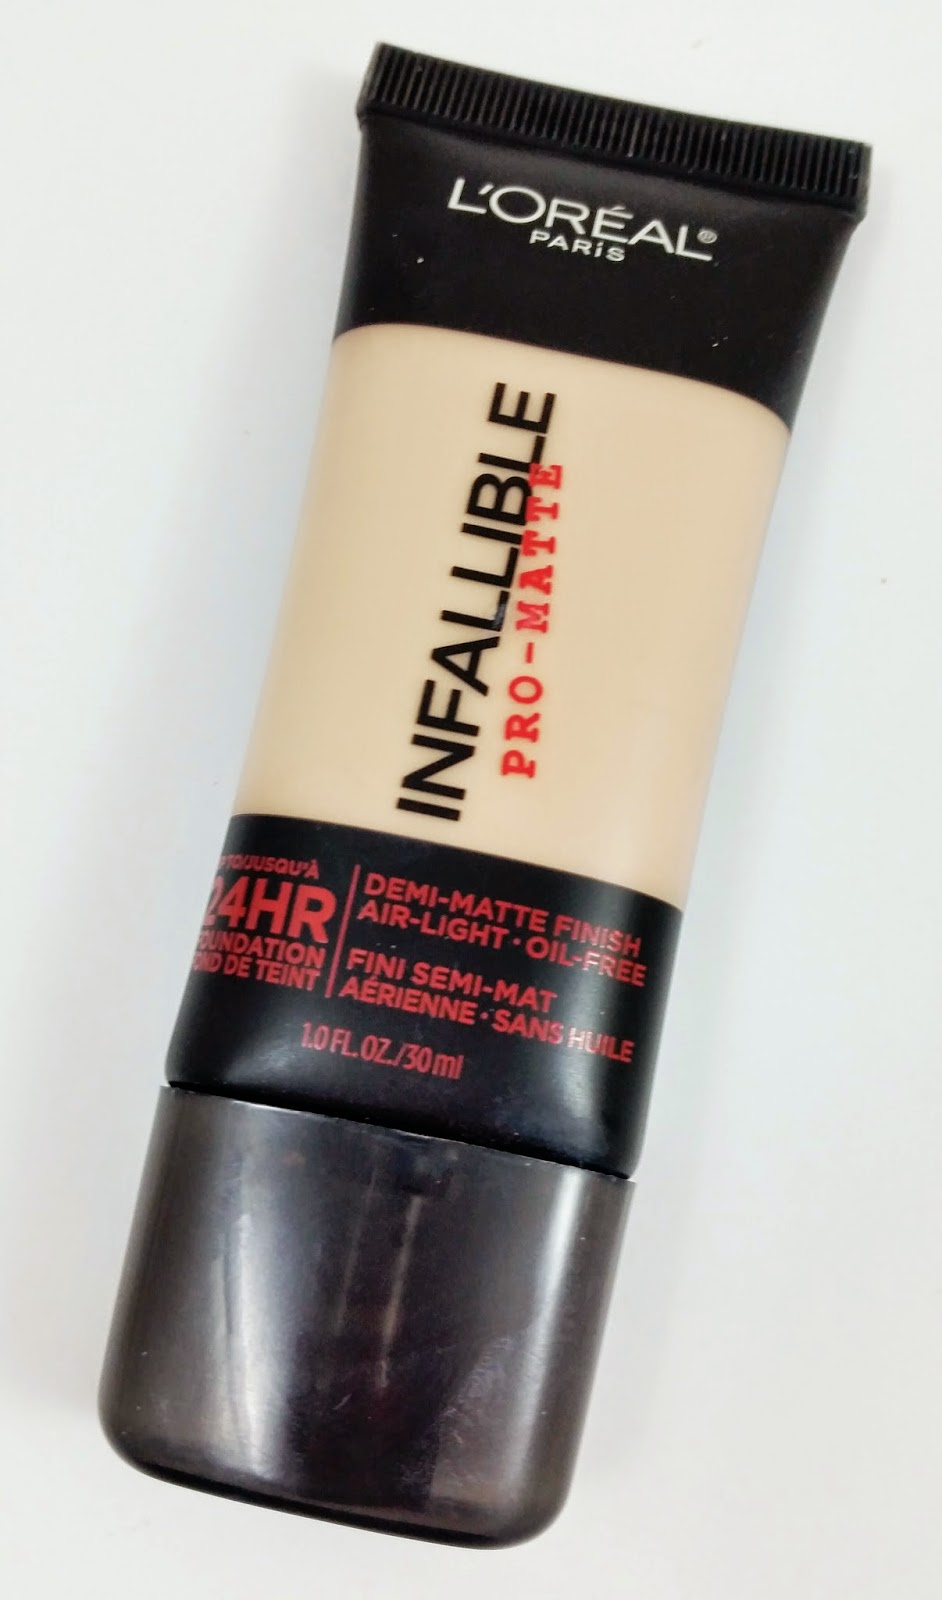 Pro Foundation Mixers By Nyx Professional Makeup: L'oreal Infallible Pro-Matte Foundation Review And